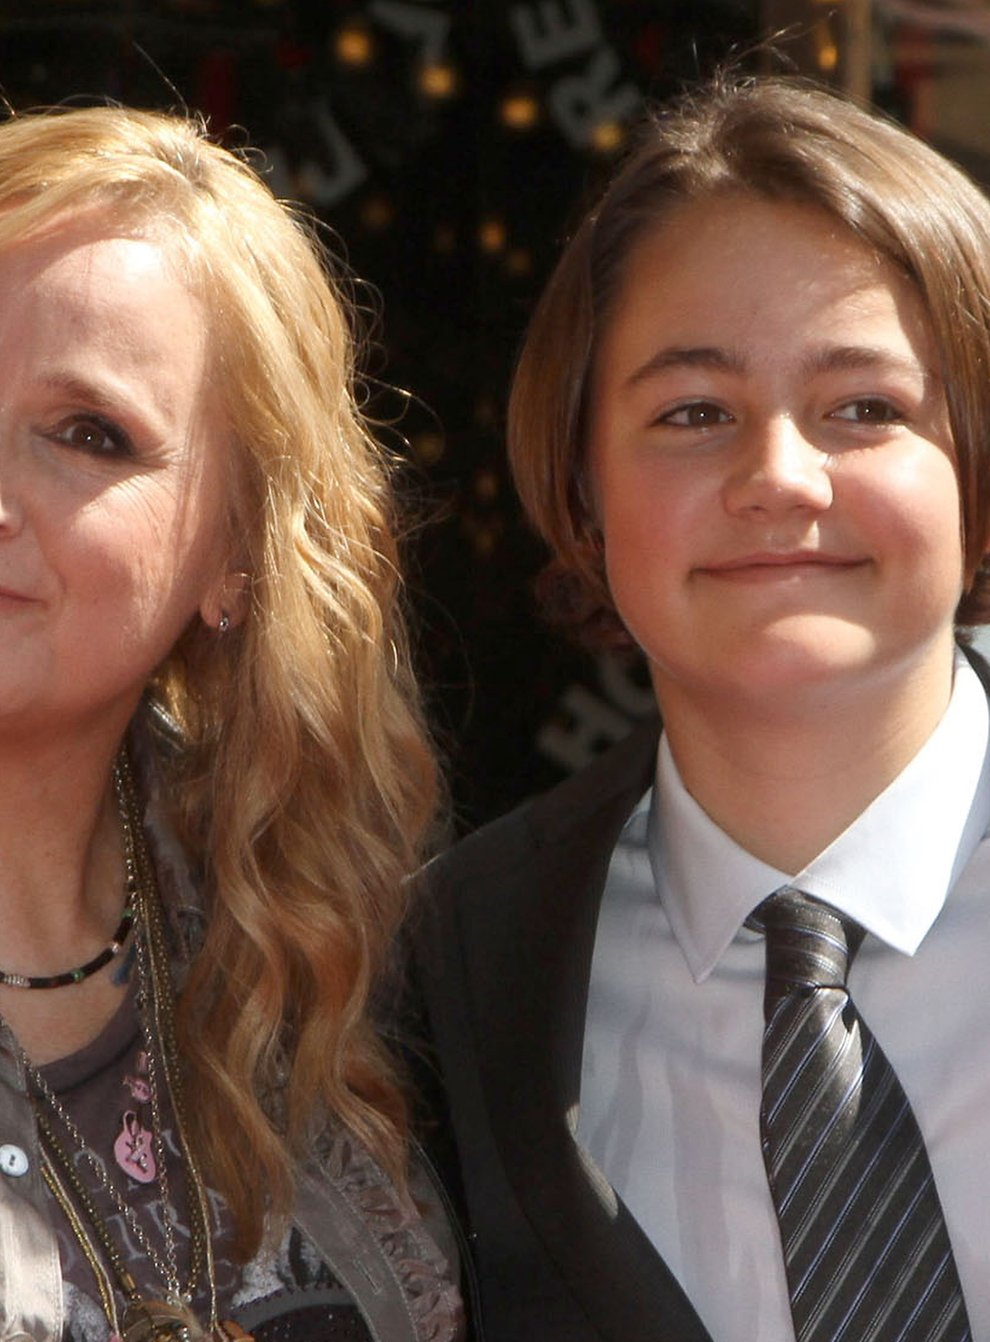 Melissa Etheridge has paid tribute to her son Beckett Cypher following his tragic death (PA Images)